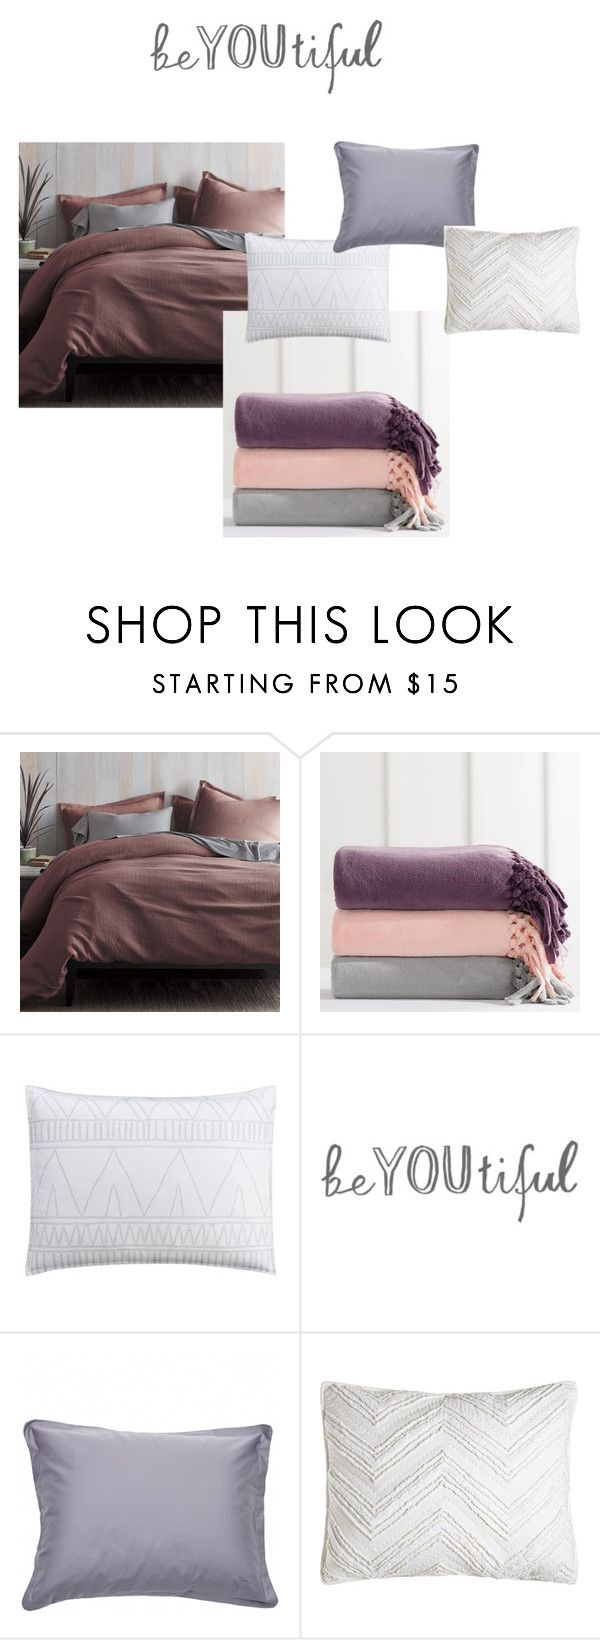 """""""bedhead"""" by heddastoltnielsen on Polyvore featuring interior, interiors, interior design, home, home decor, interior decorating, PBteen, cupcakes and cashmere, GANT and C & F"""